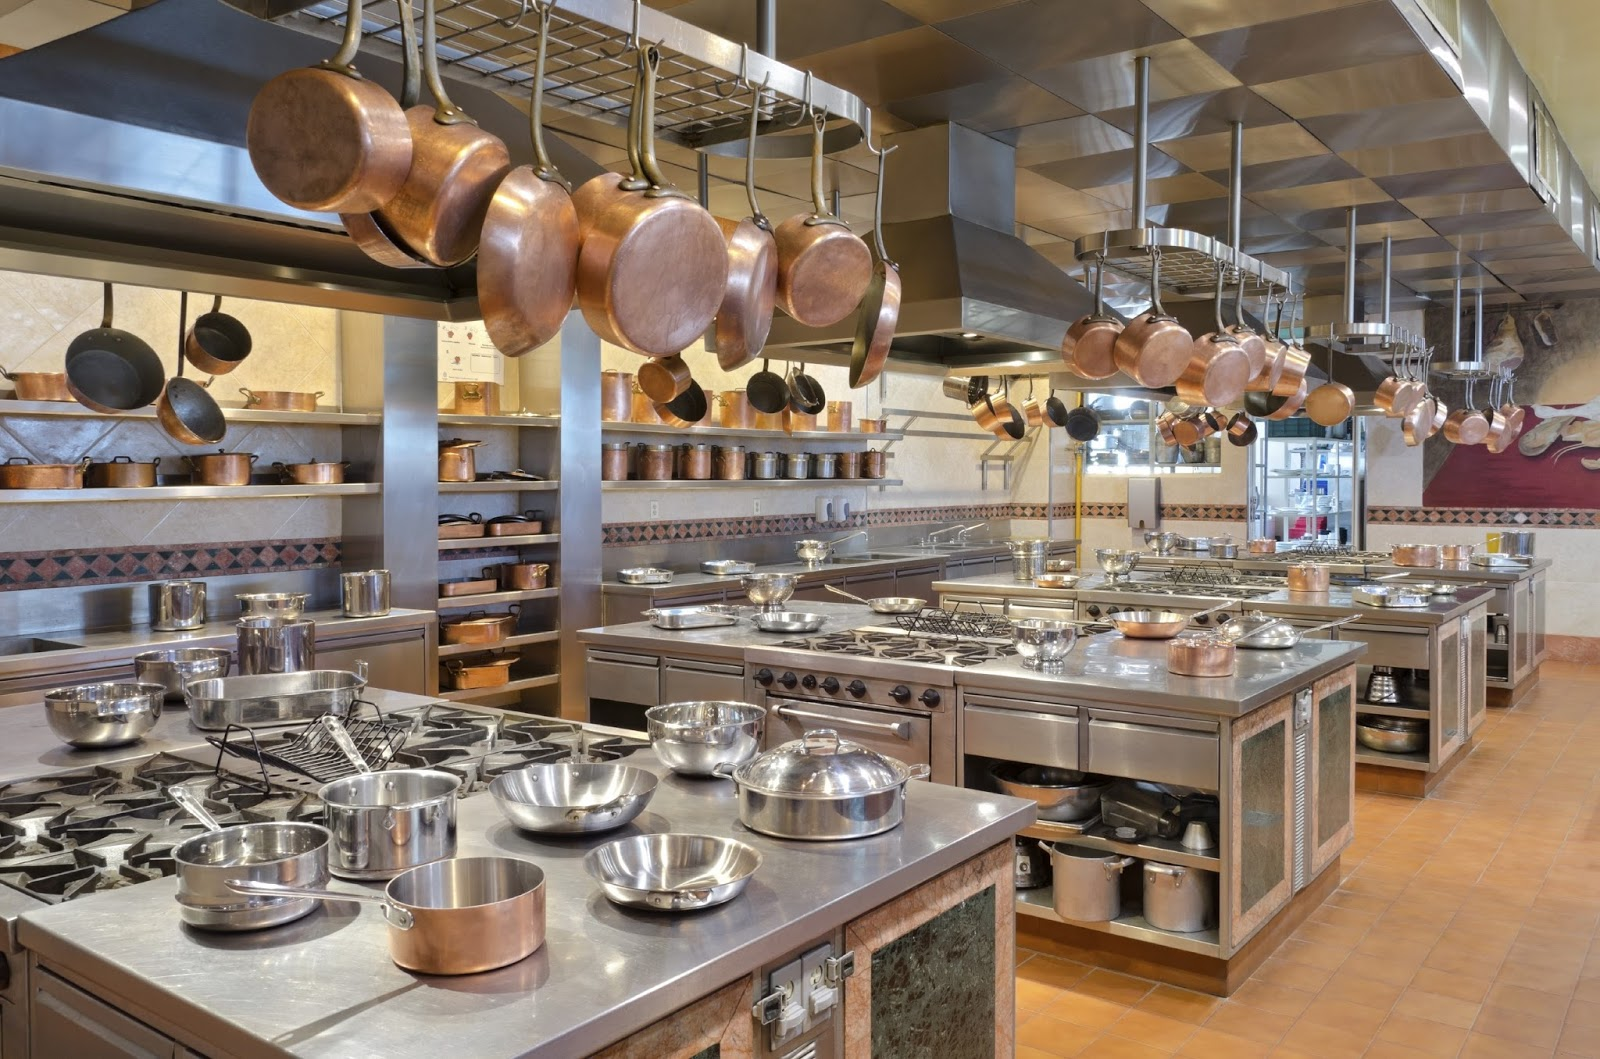 Restaurant Kitchen Regulations rental kitchen equipment - eden park restaurant